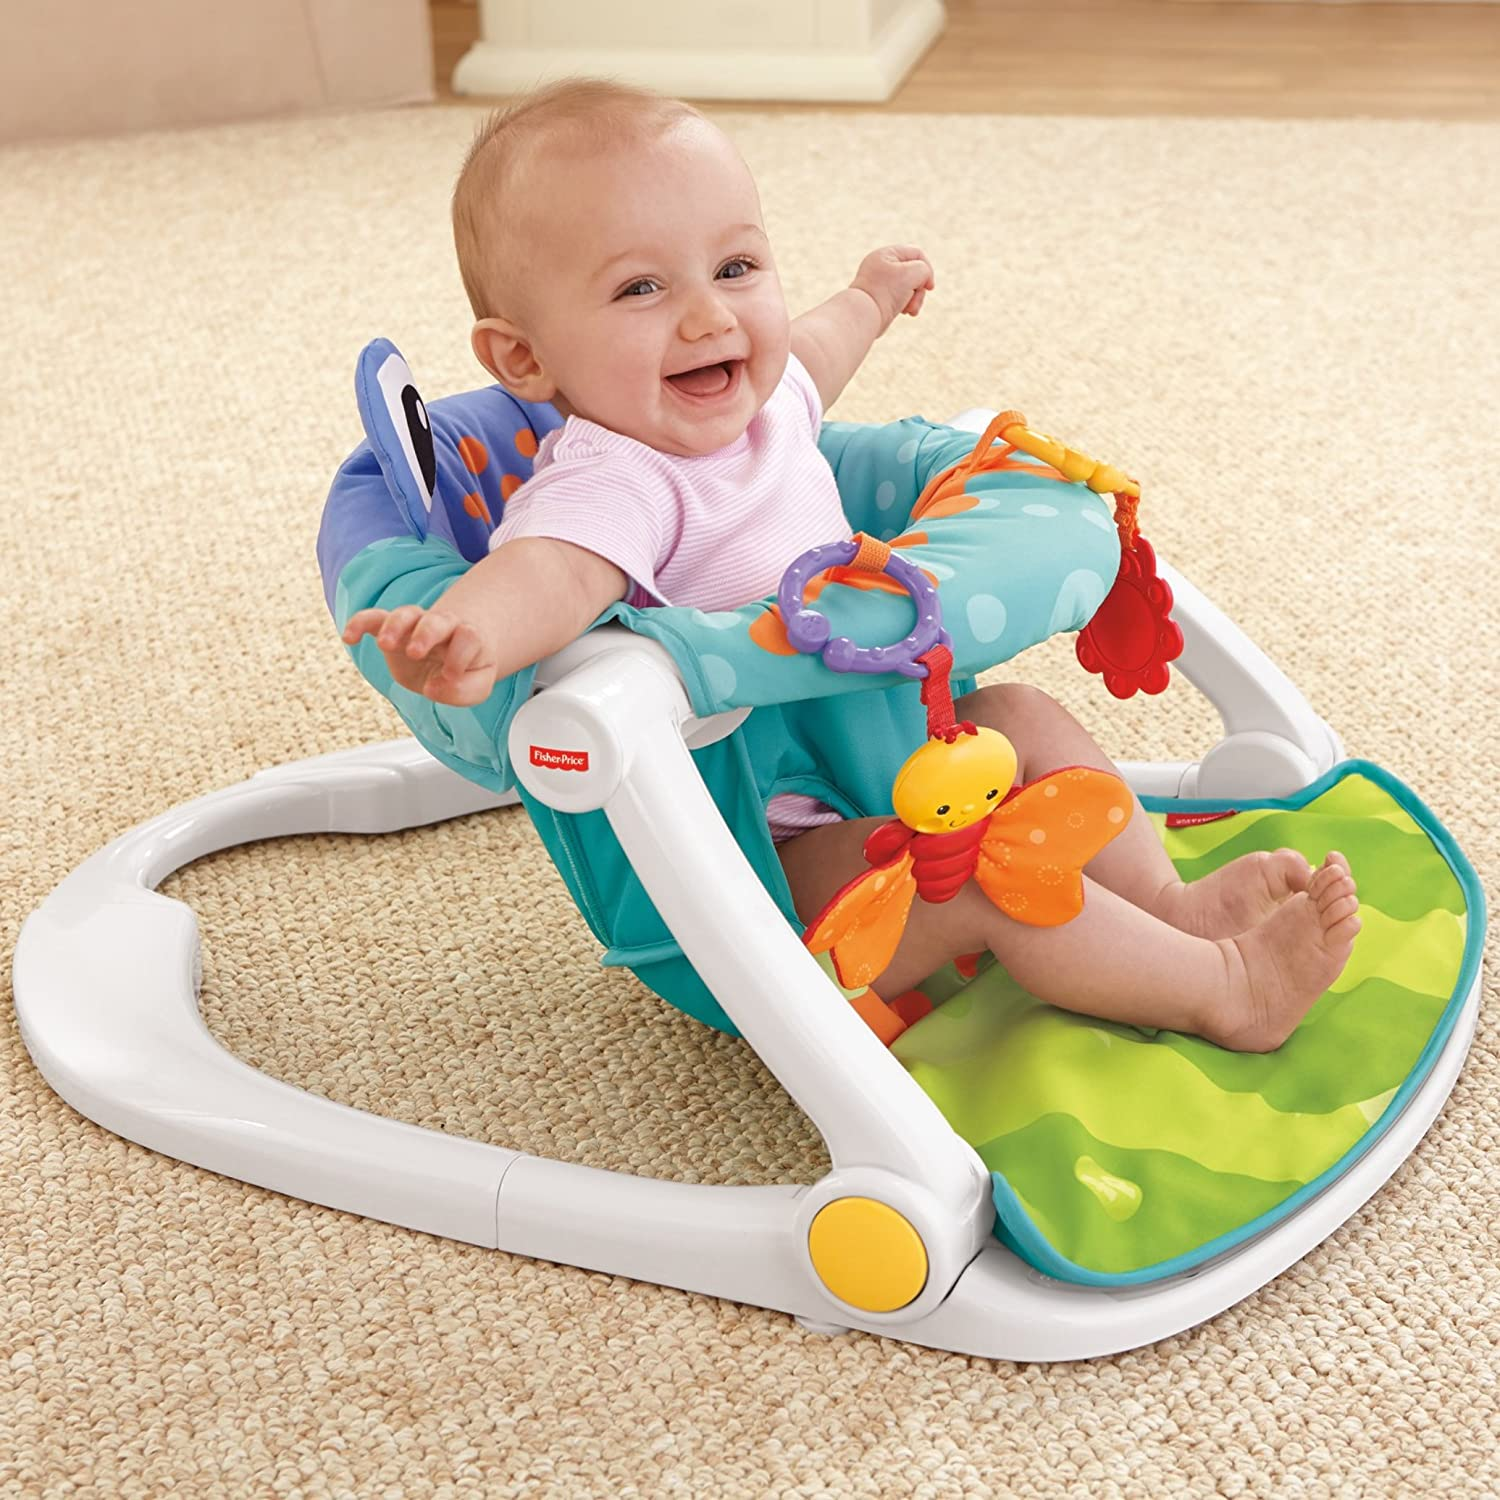 Amazon.com   Fisher-Price Sit-Me-Up Floor Seat   Baby 55fe0f39af93c